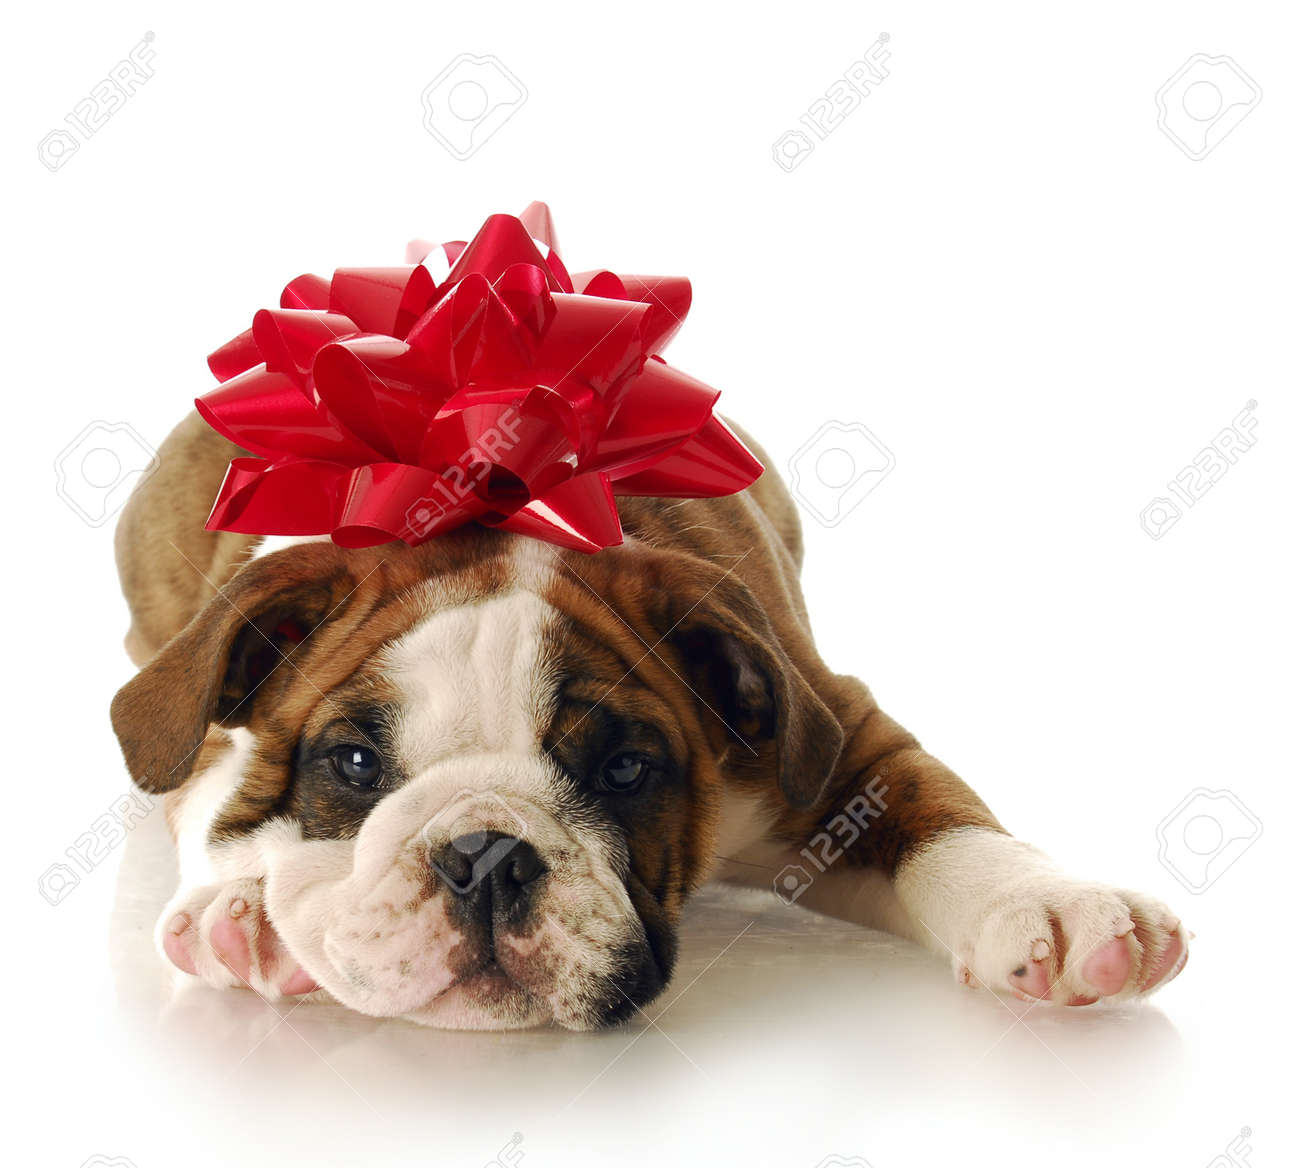 Amazing Puppies Bow Adorable Dog - 7427500-adorable-english-bulldog-puppy-with-red-bow-on-his-head-with-reflection-on-white-background  Photograph_935142  .jpg